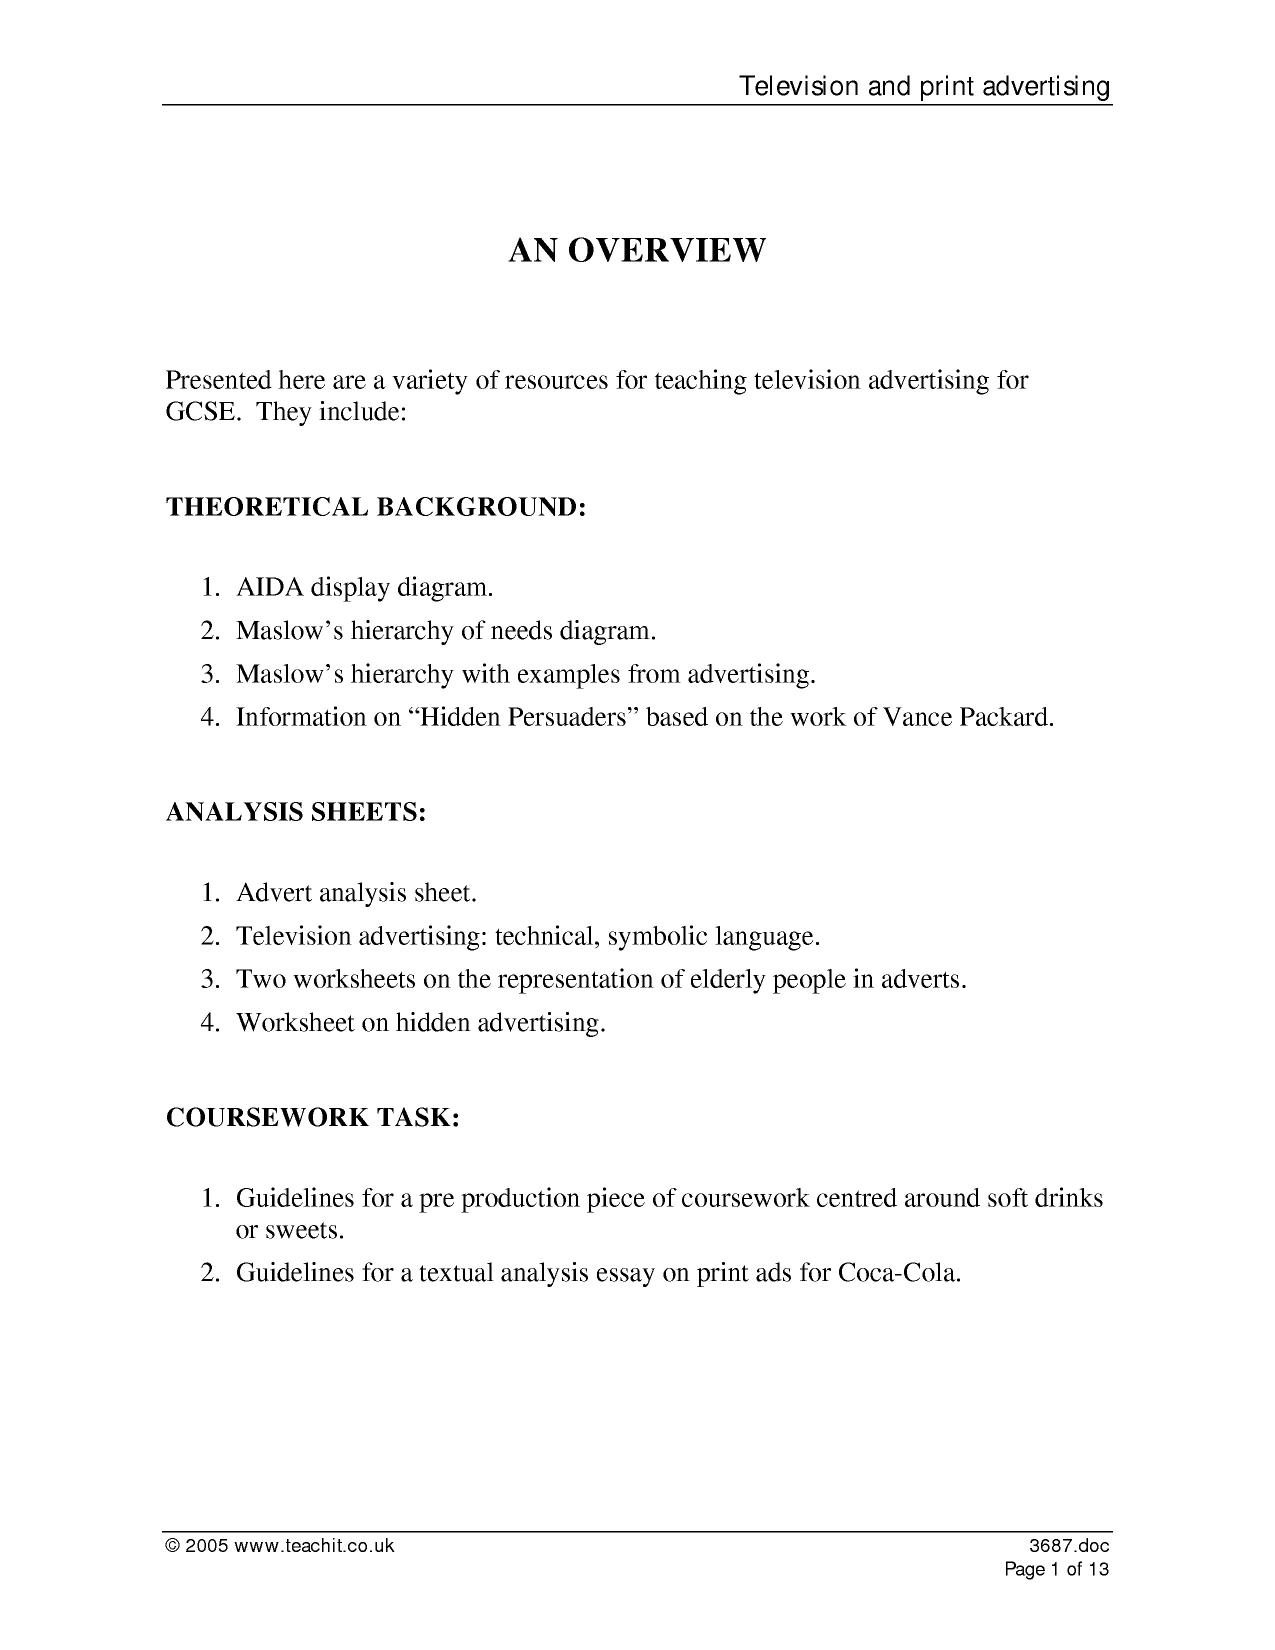 003 Essay Example Diagram Caltech Advertisement Analysis How To Write Long Quickly Proposal In One Night For Ap World History Question Apush With Little Information Us Fast Magnificent Essays Tips Application Questions Supplemental 2018 Full